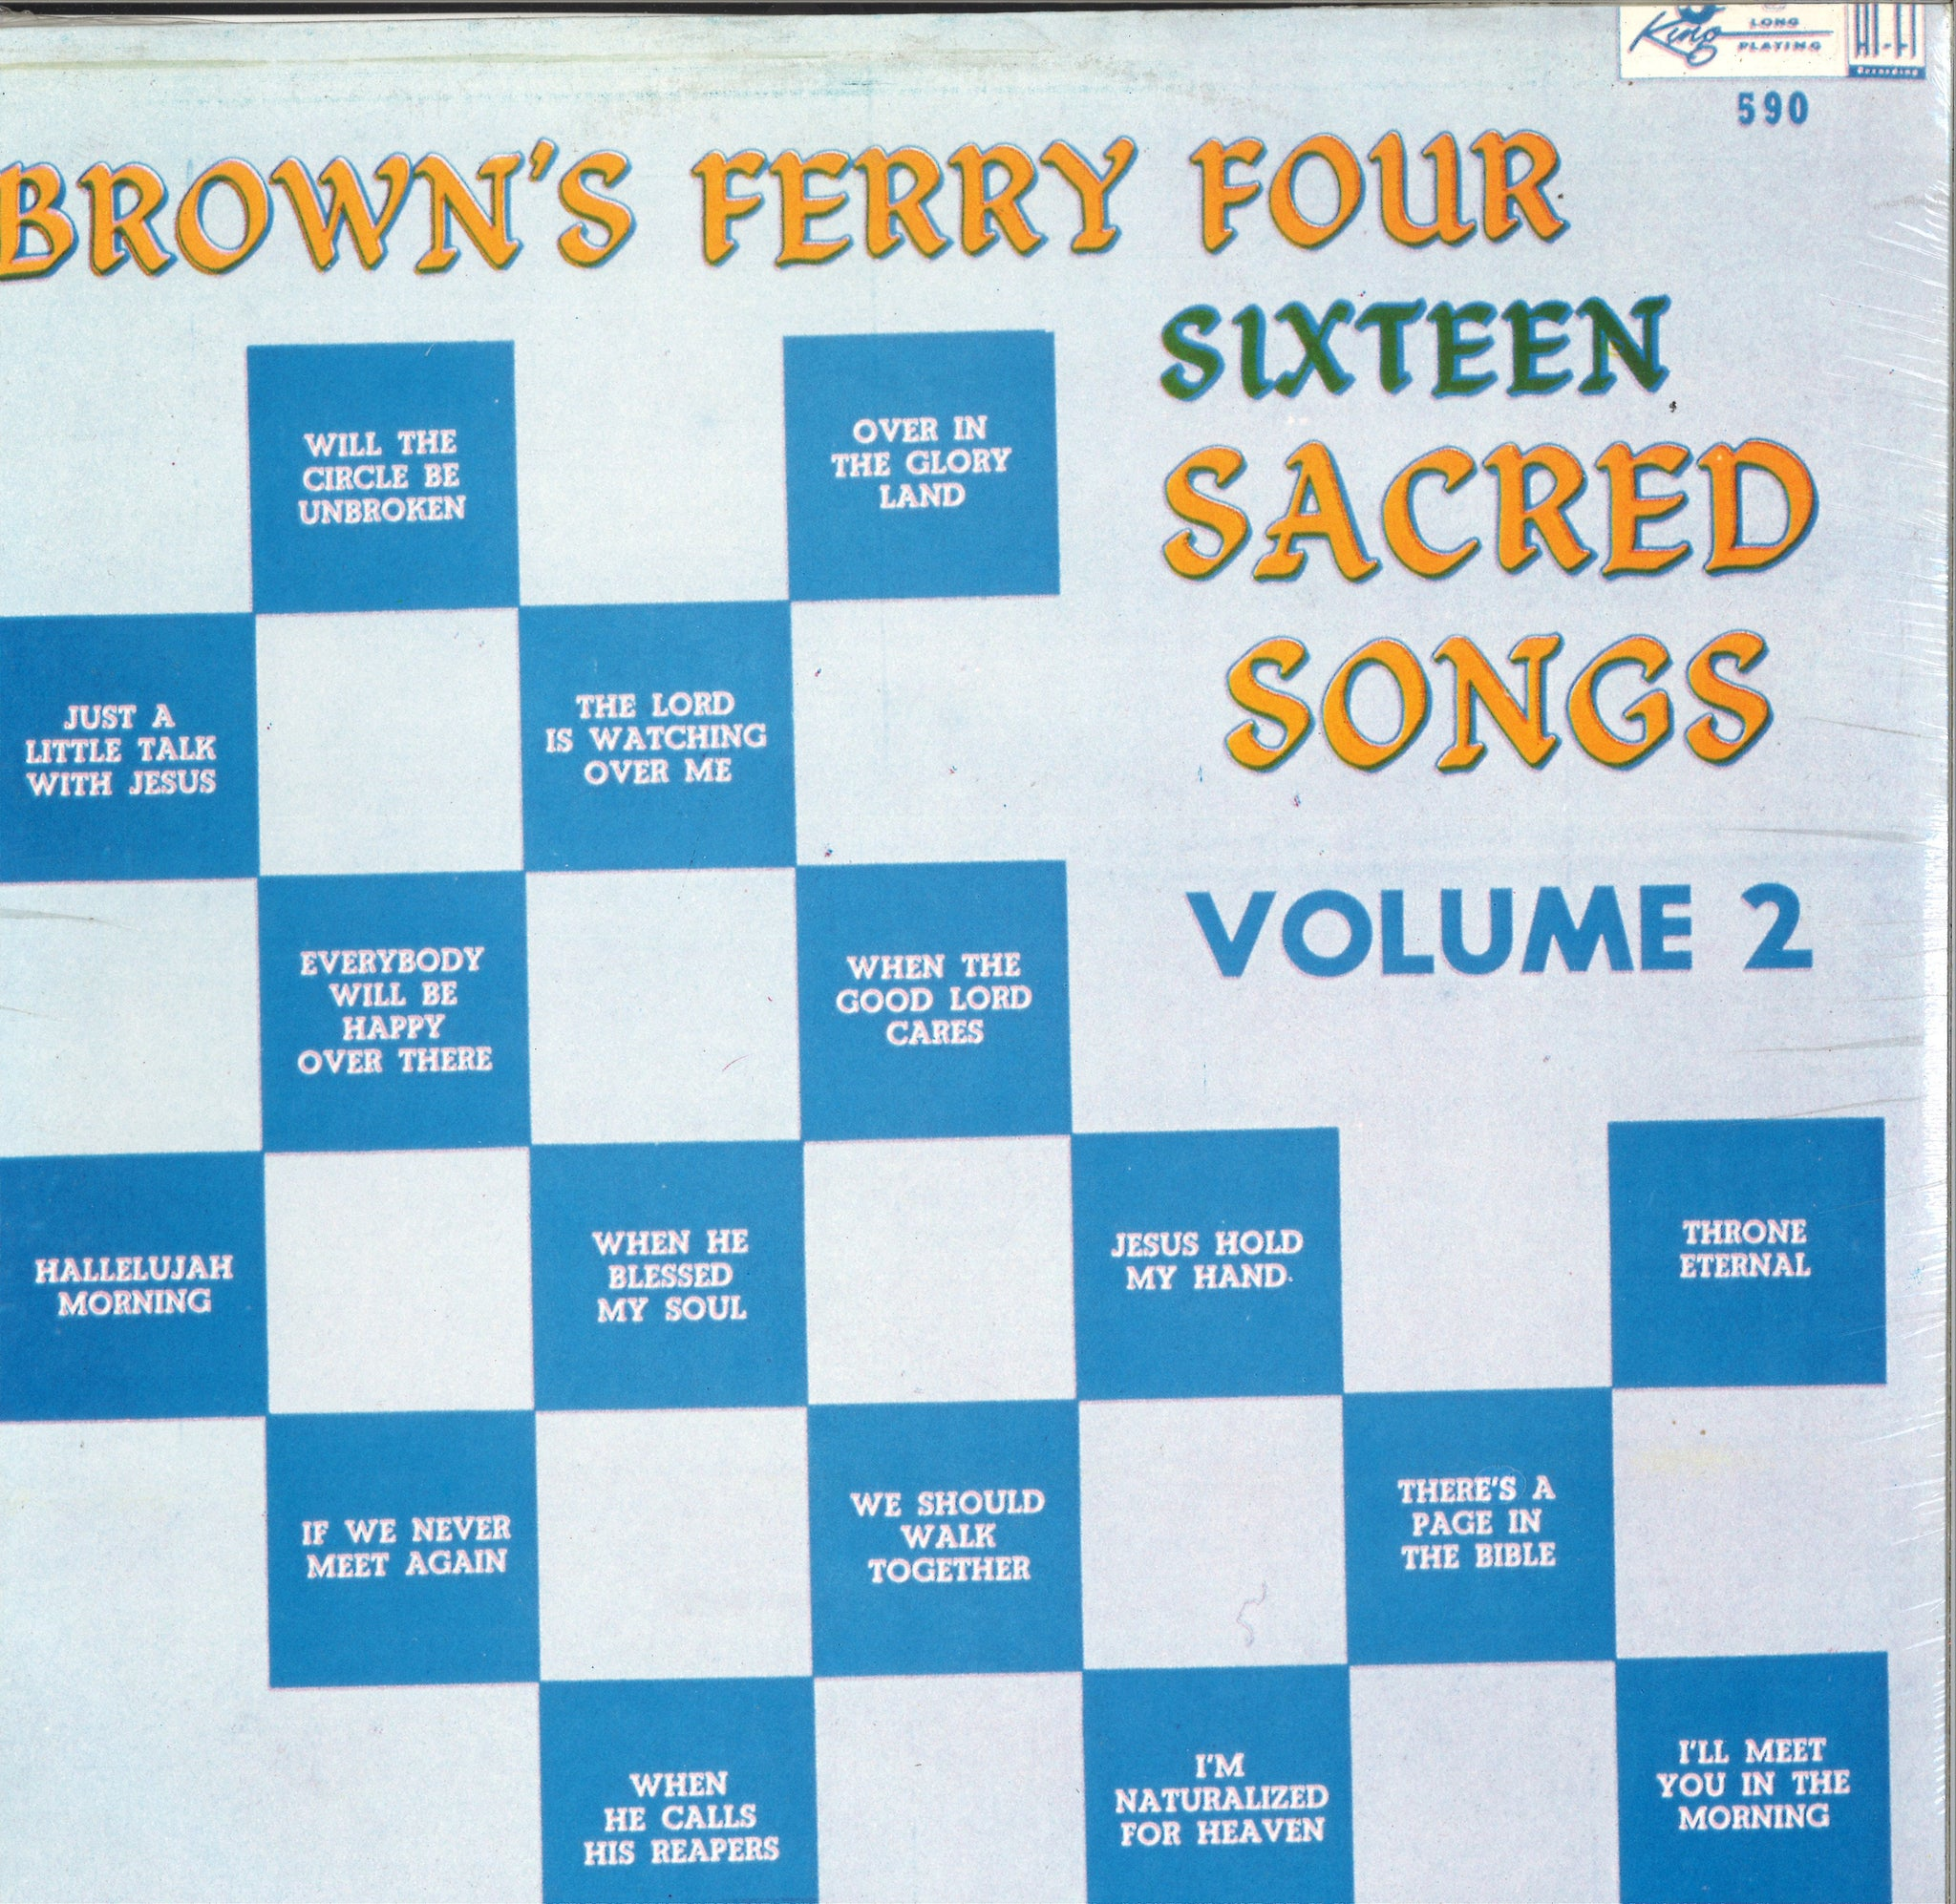 Brown's Ferry Four Sacred Songs Volume 2